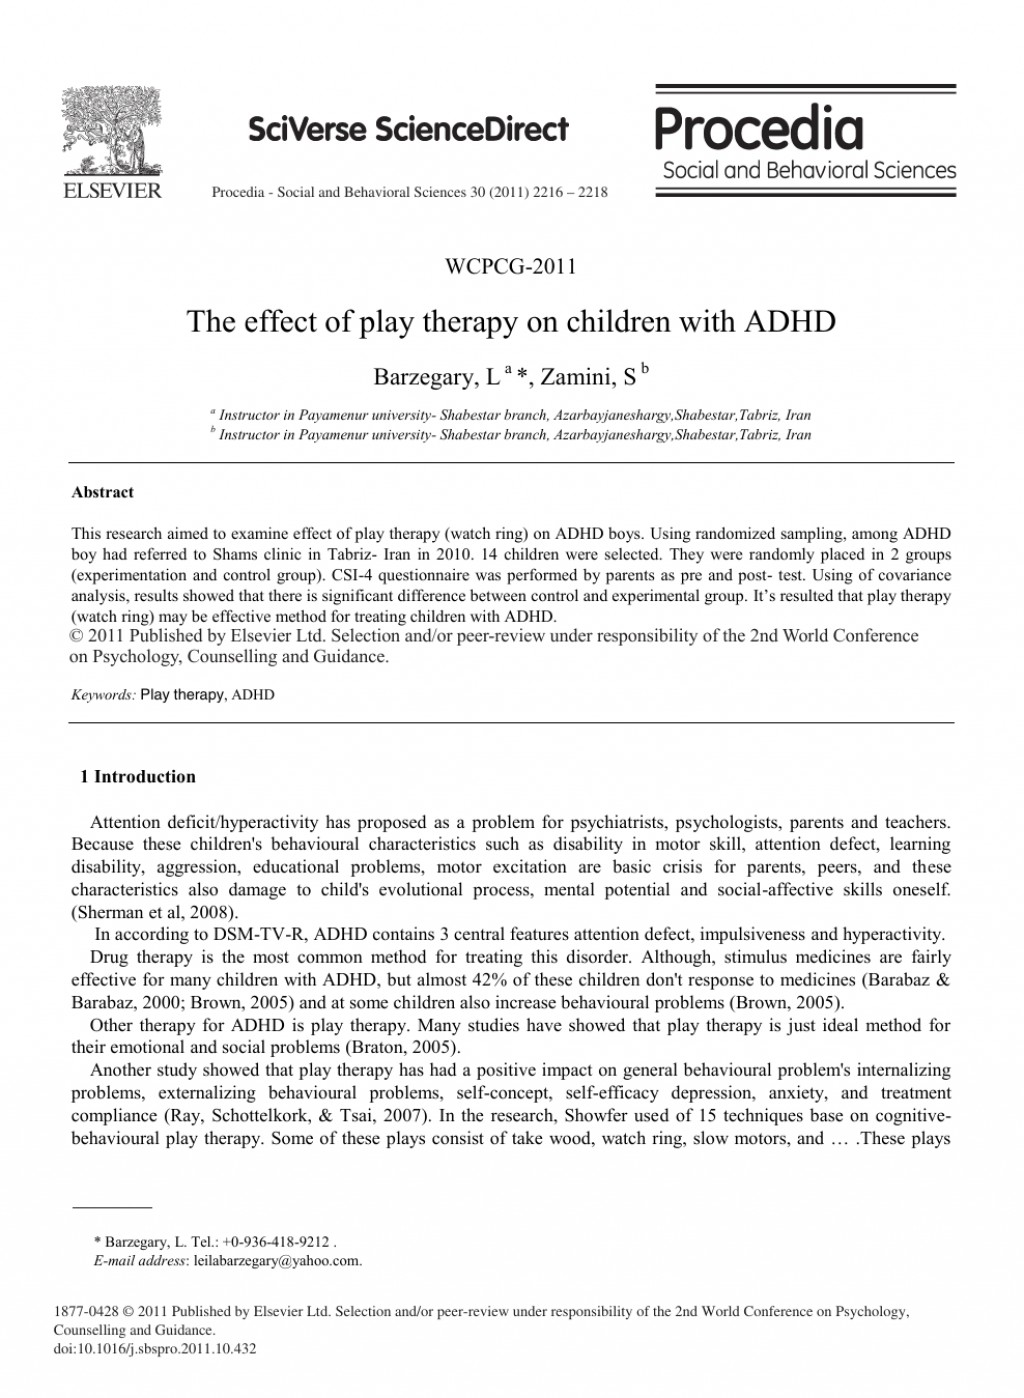 004 Adhd Research Paper Amazing Abstract Large